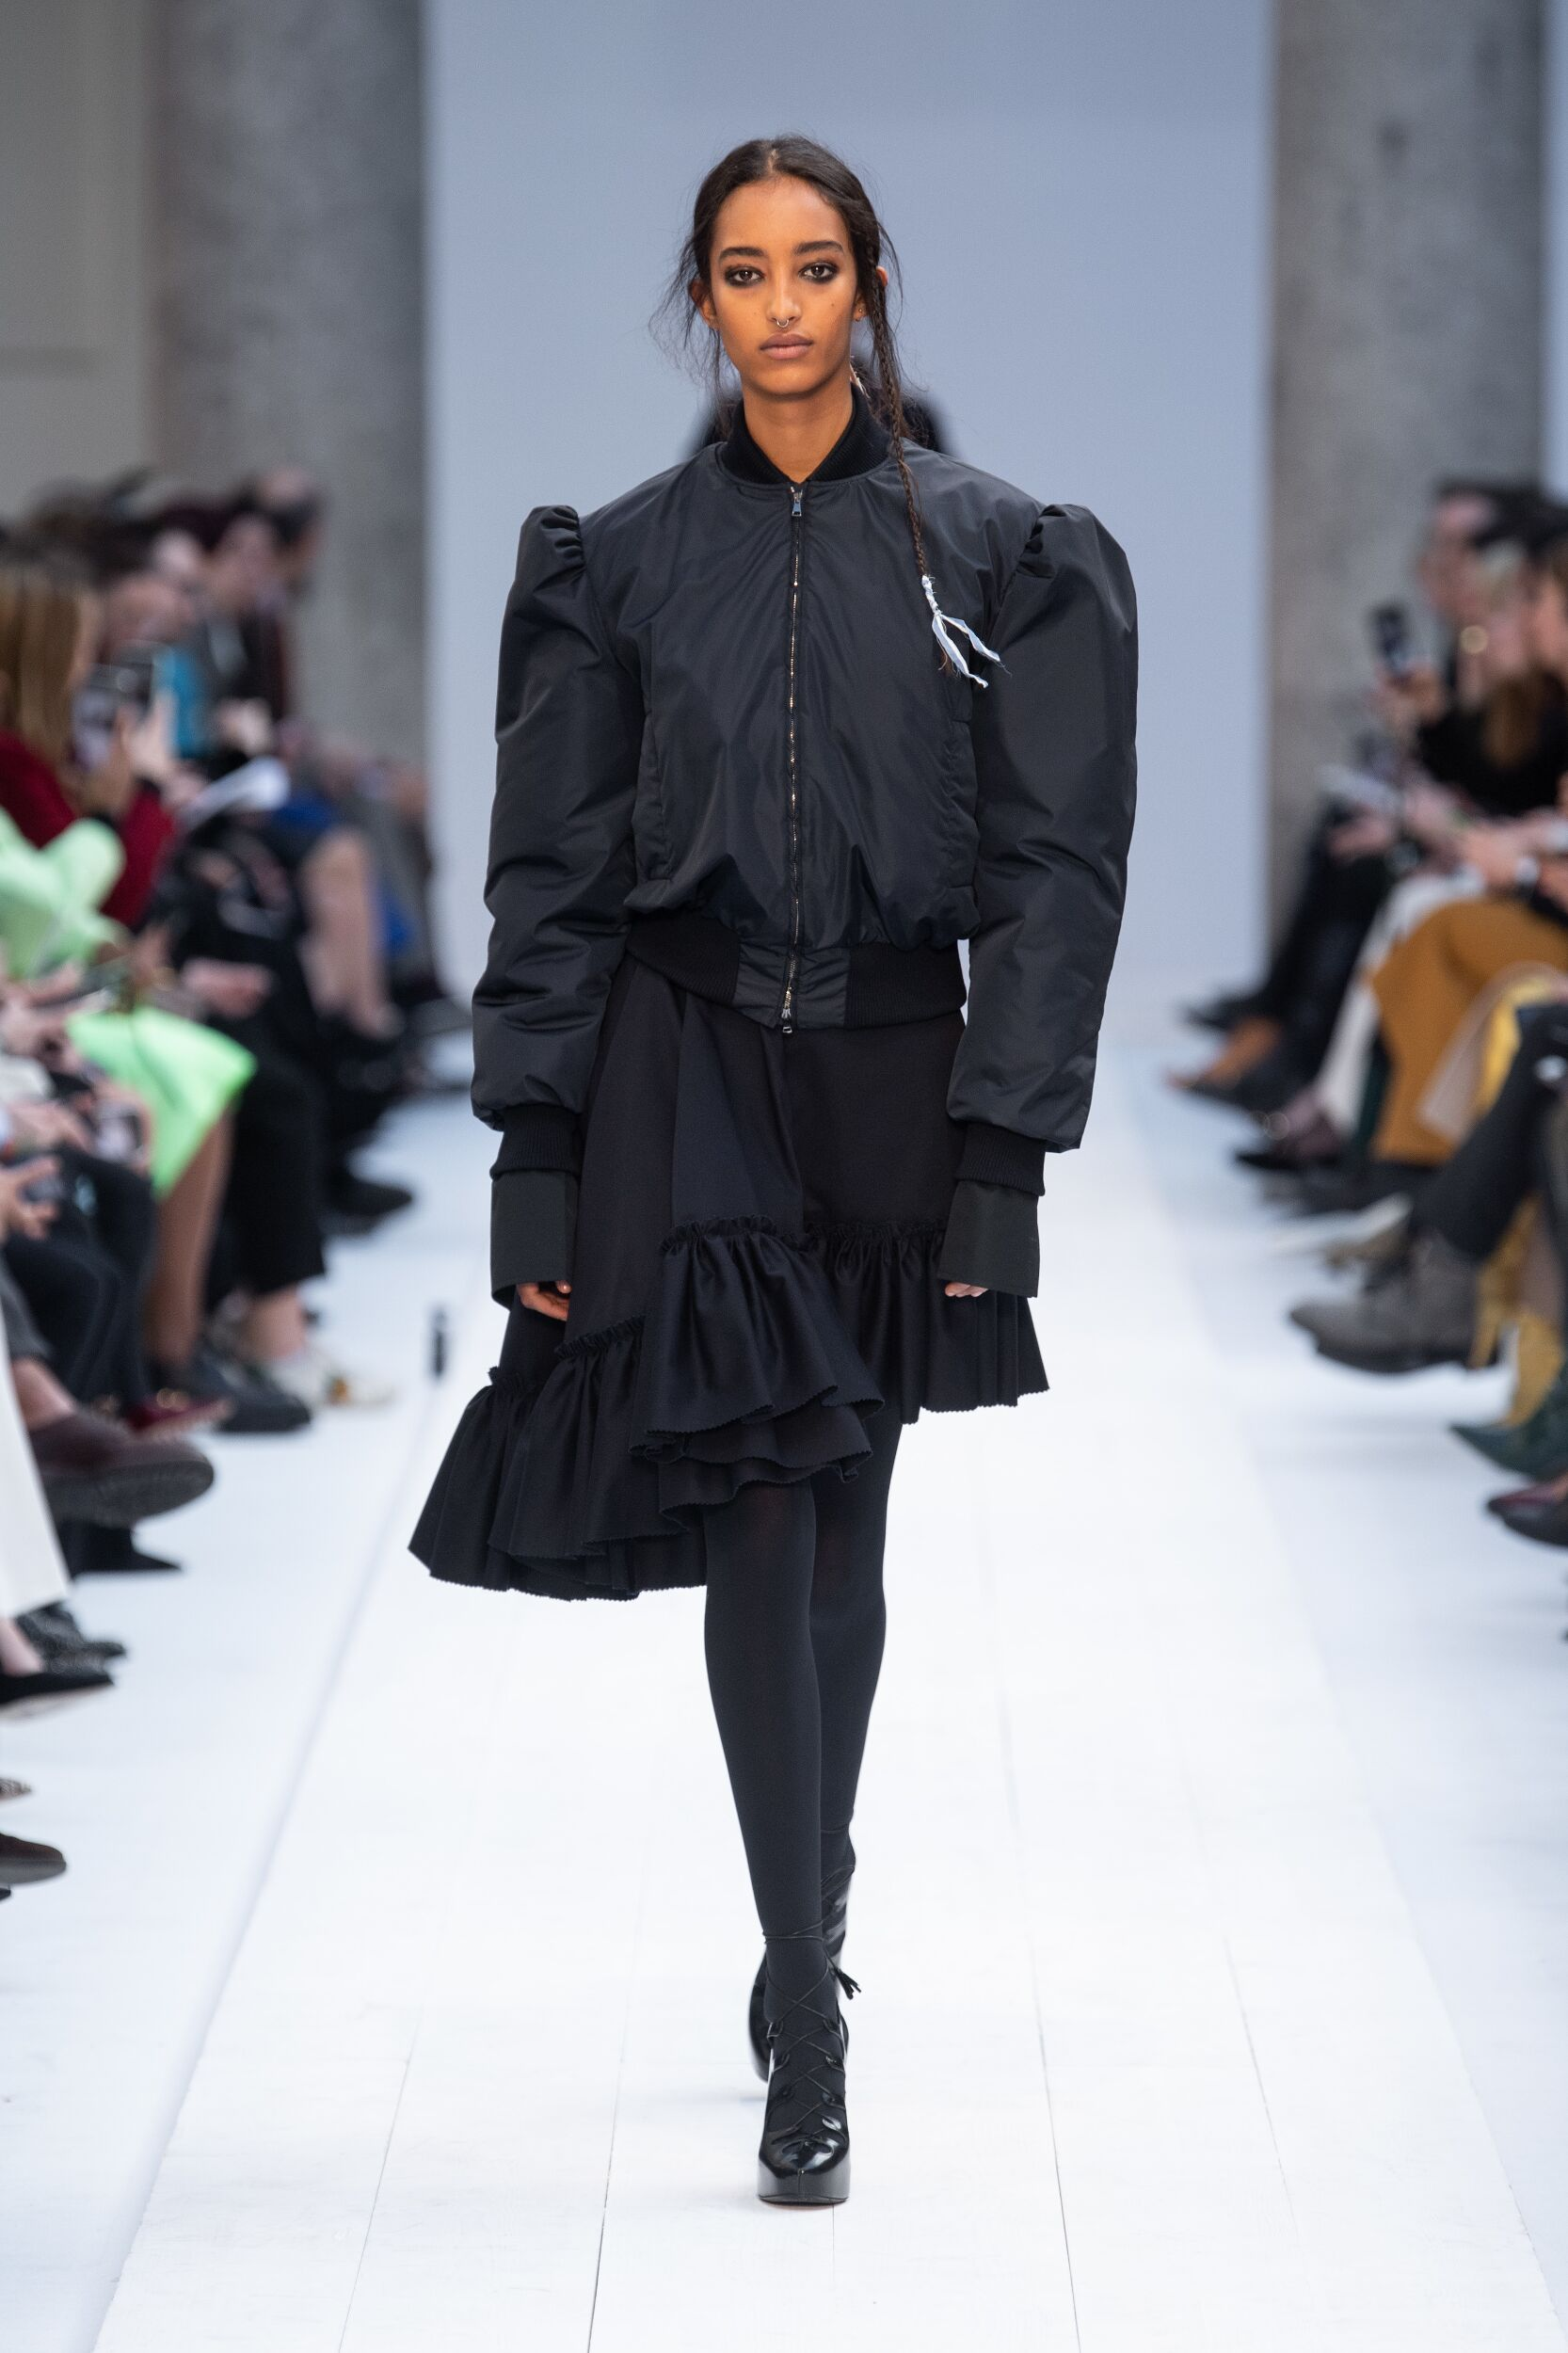 FW 2020-21 Max Mara Fashion Show